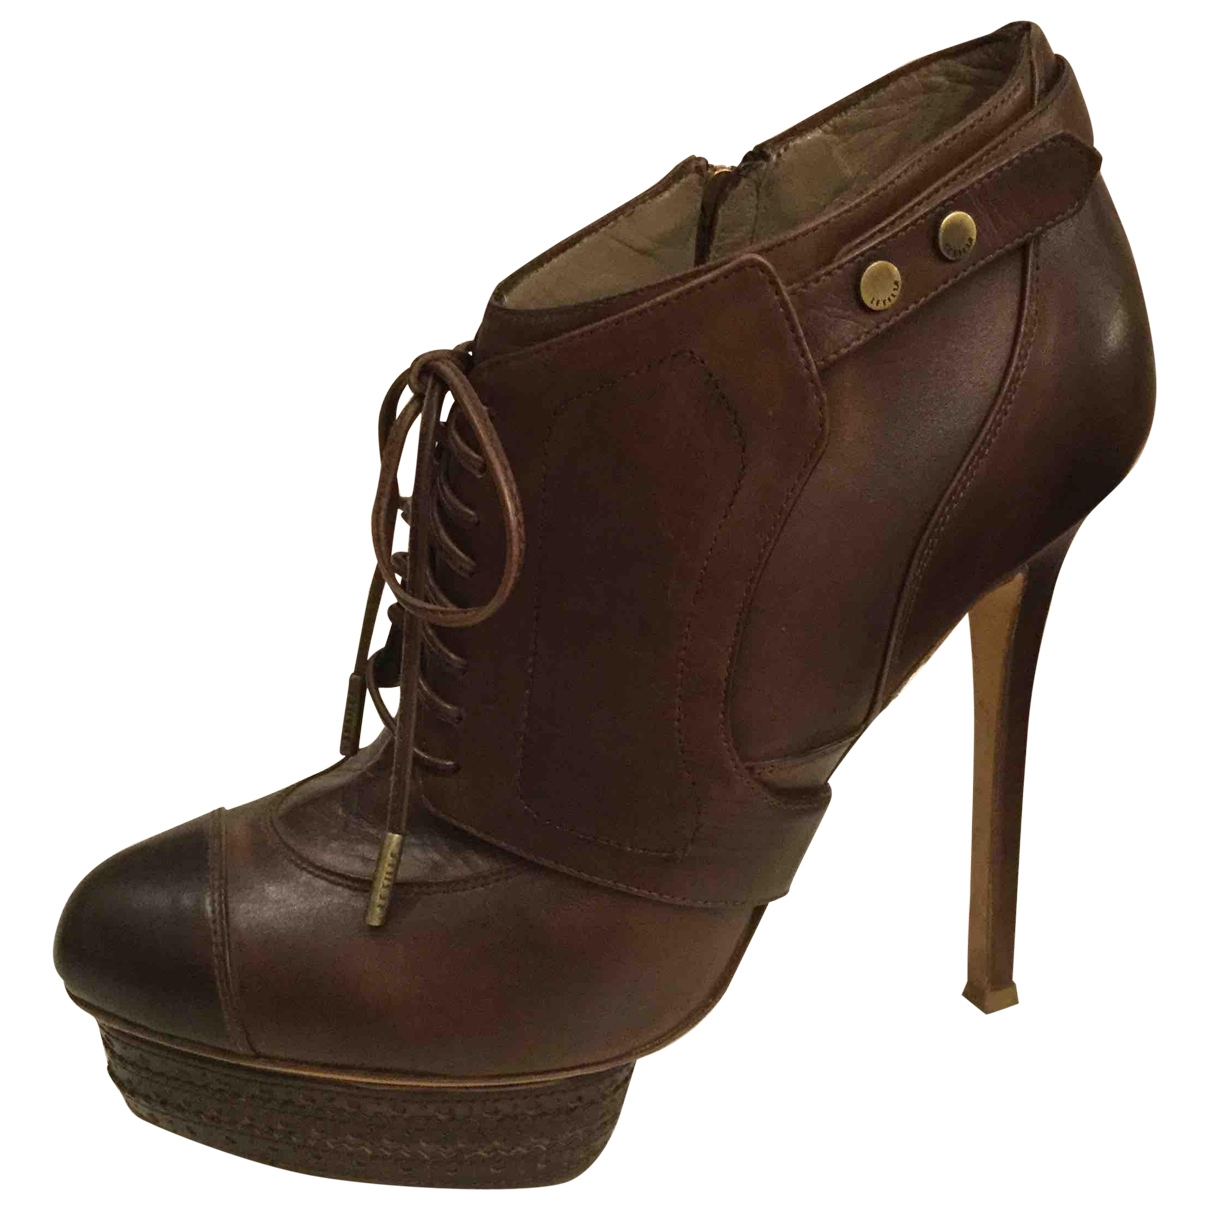 Le Silla \N Brown Leather Ankle boots for Women 40 EU